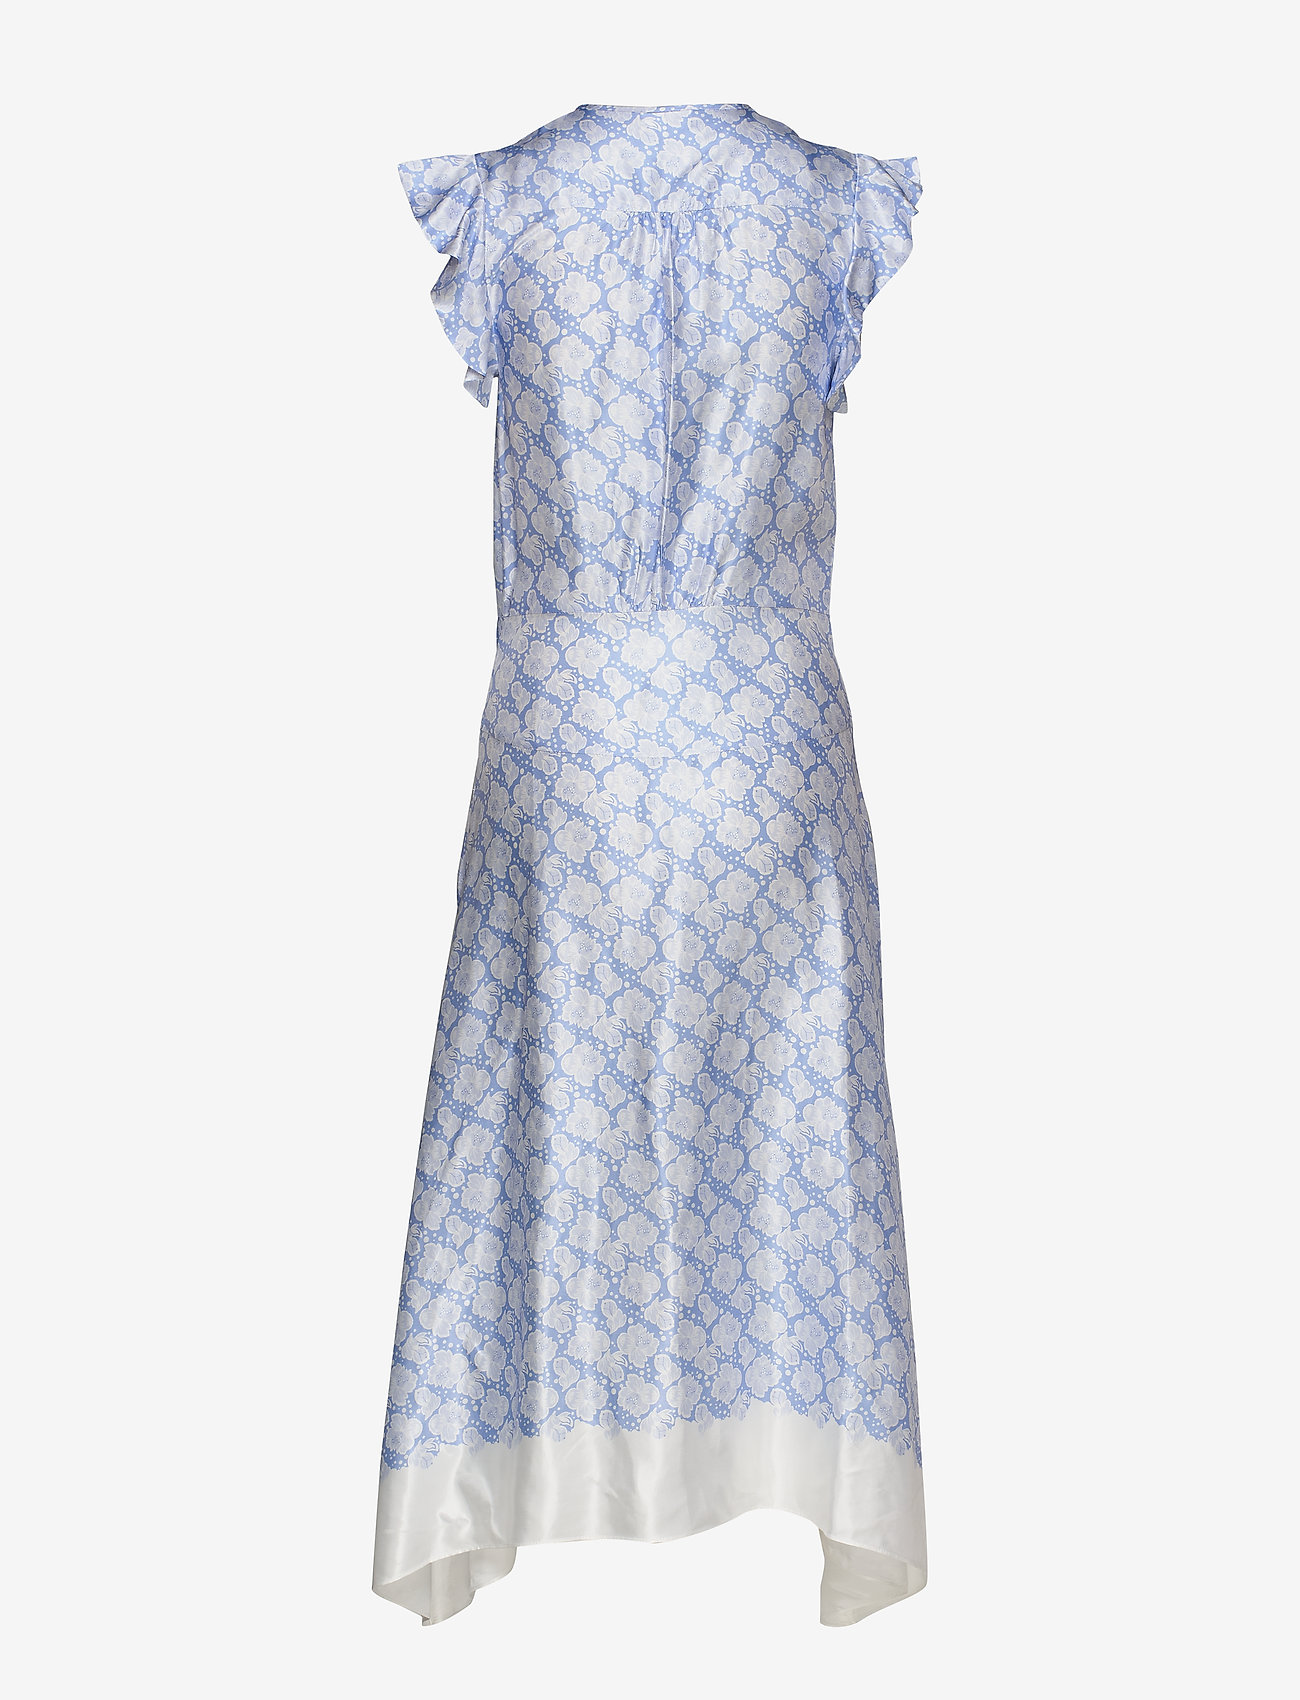 Paine (Pacific Blue) (1949.35 kr) - By Malene Birger